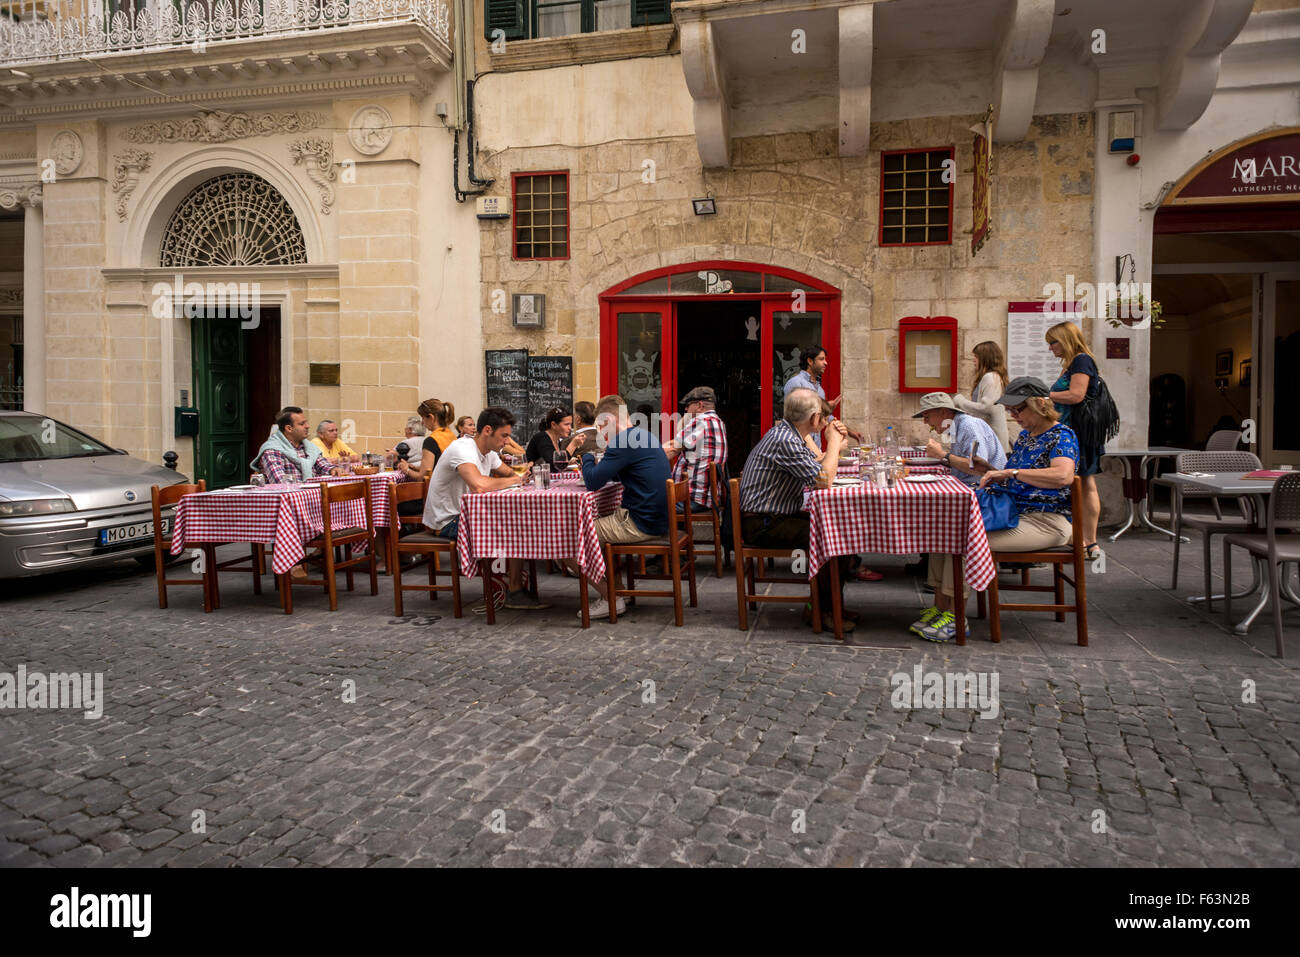 Street scenes and details in Valletta, Malta. - Stock Image